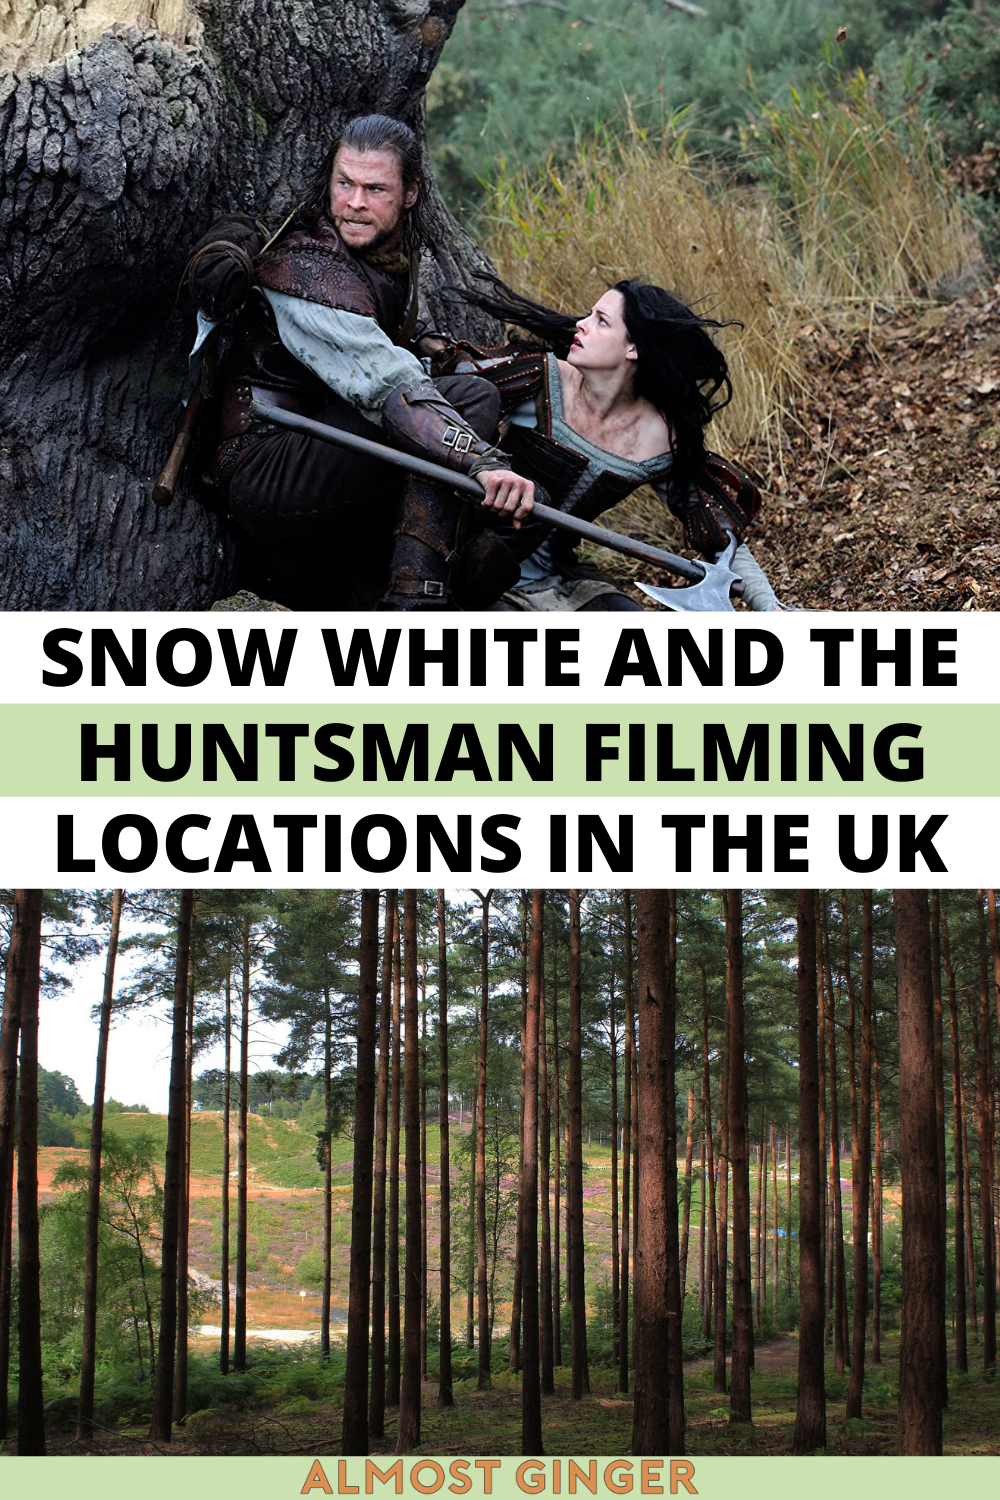 Snow White and the Huntsman Filming Locations in the UK | almostginger.com